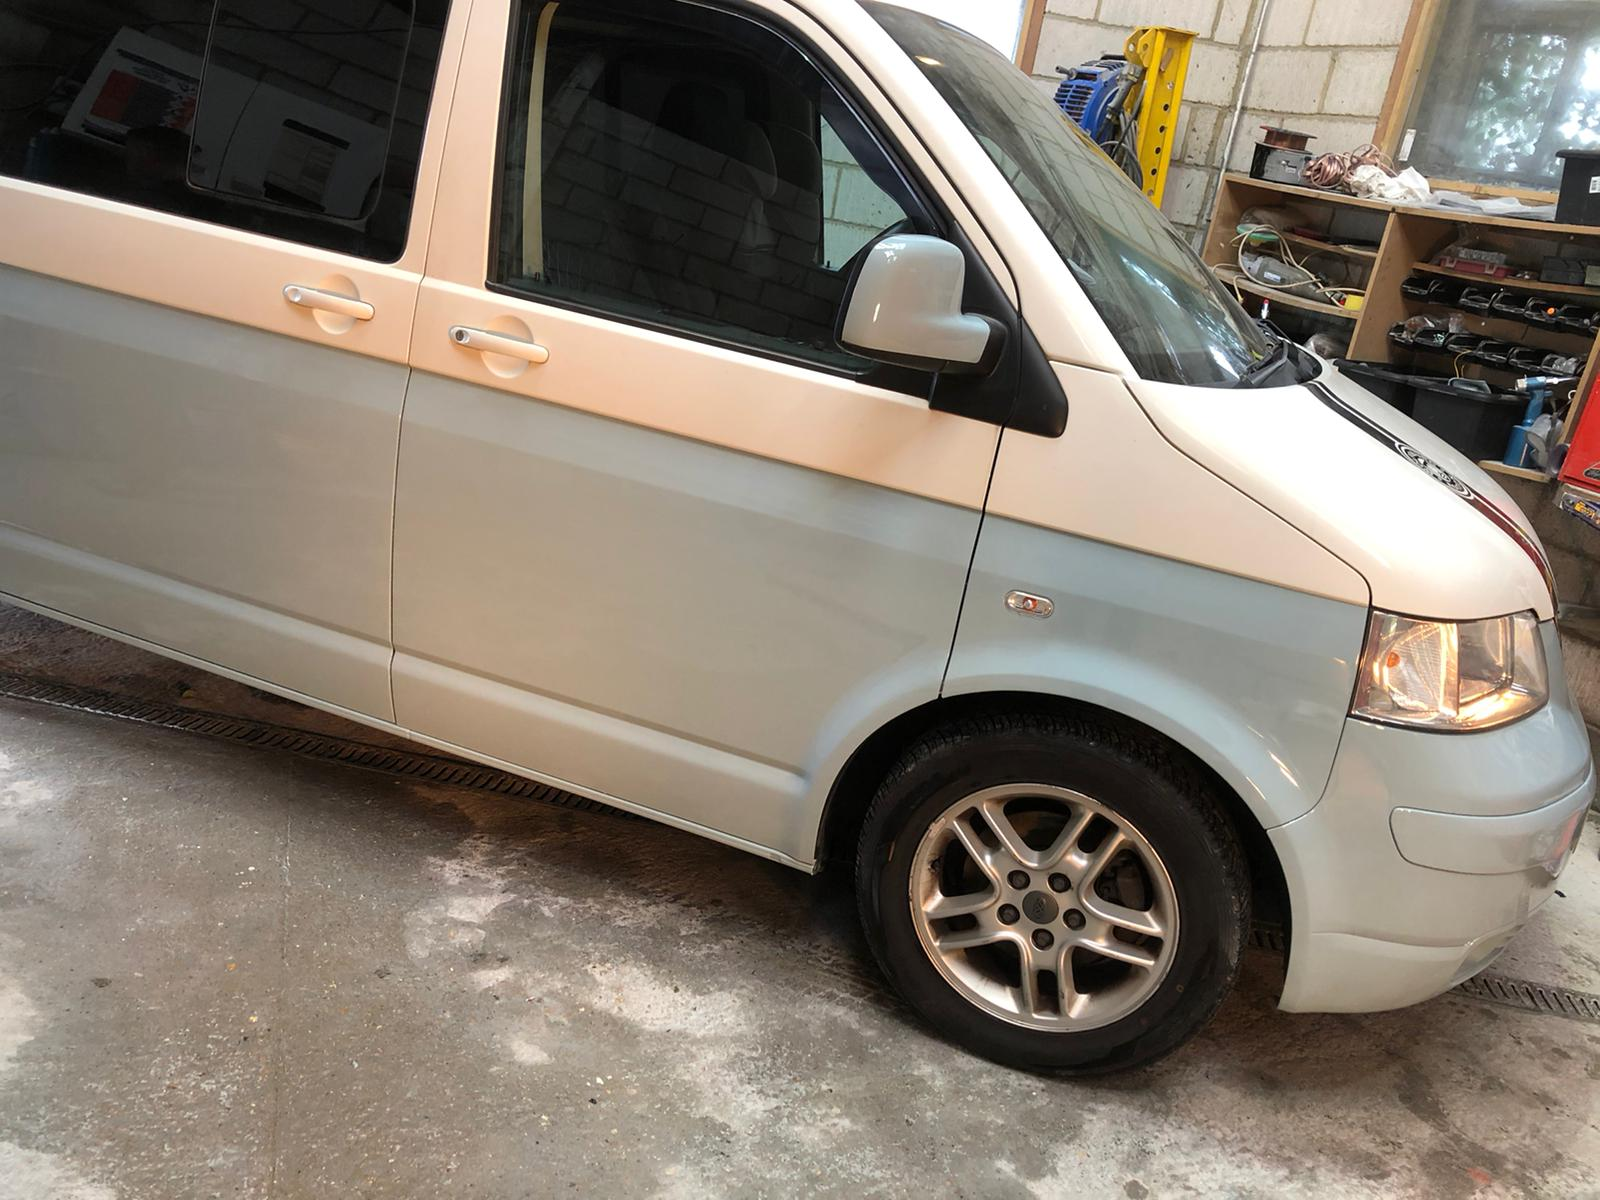 VW Transporter Two Tone Respray